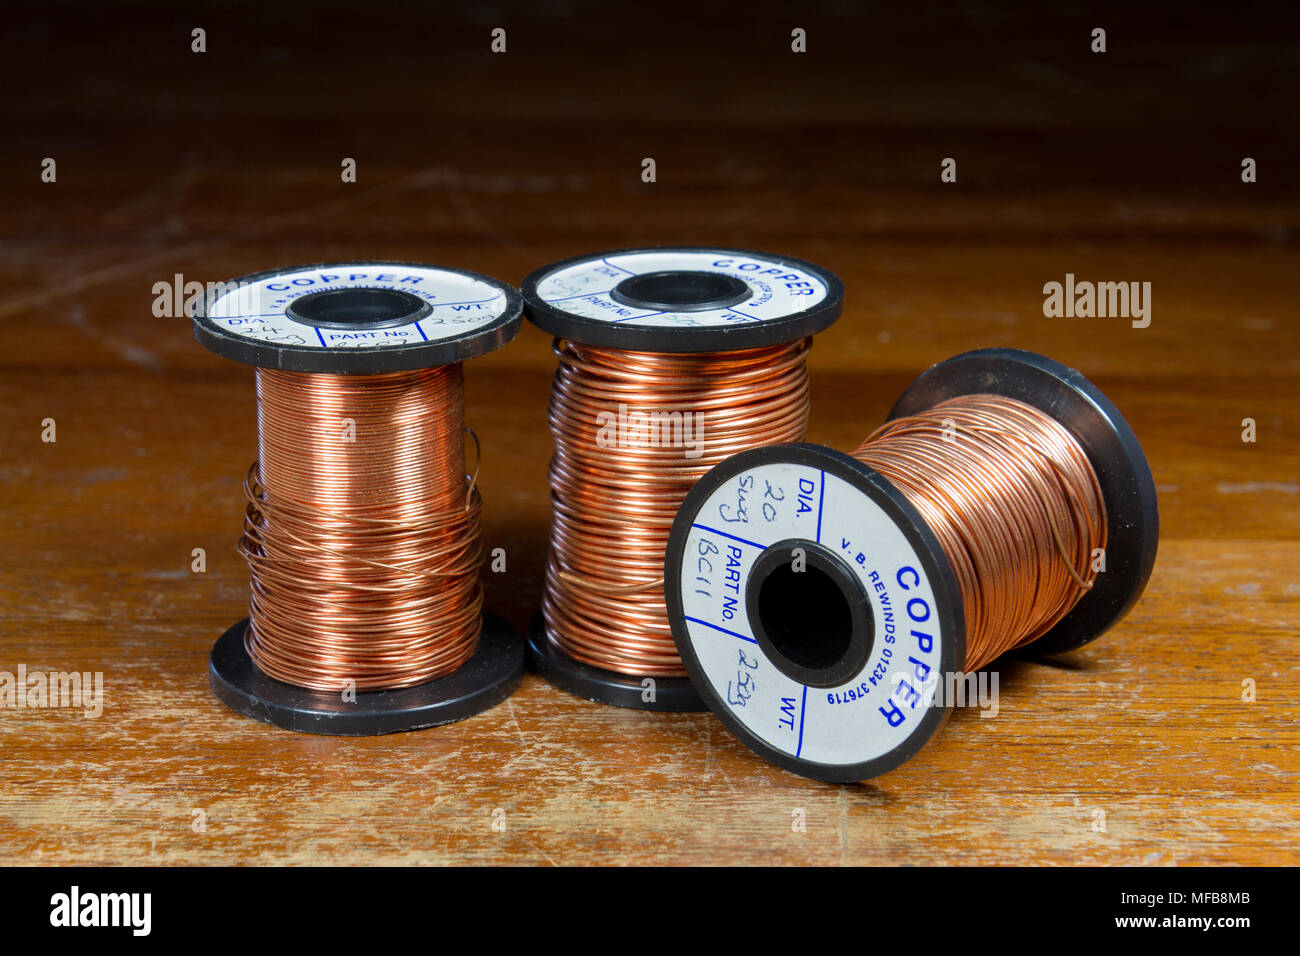 Coils of copper wire as used in a UK secondary/high school. - Stock Image